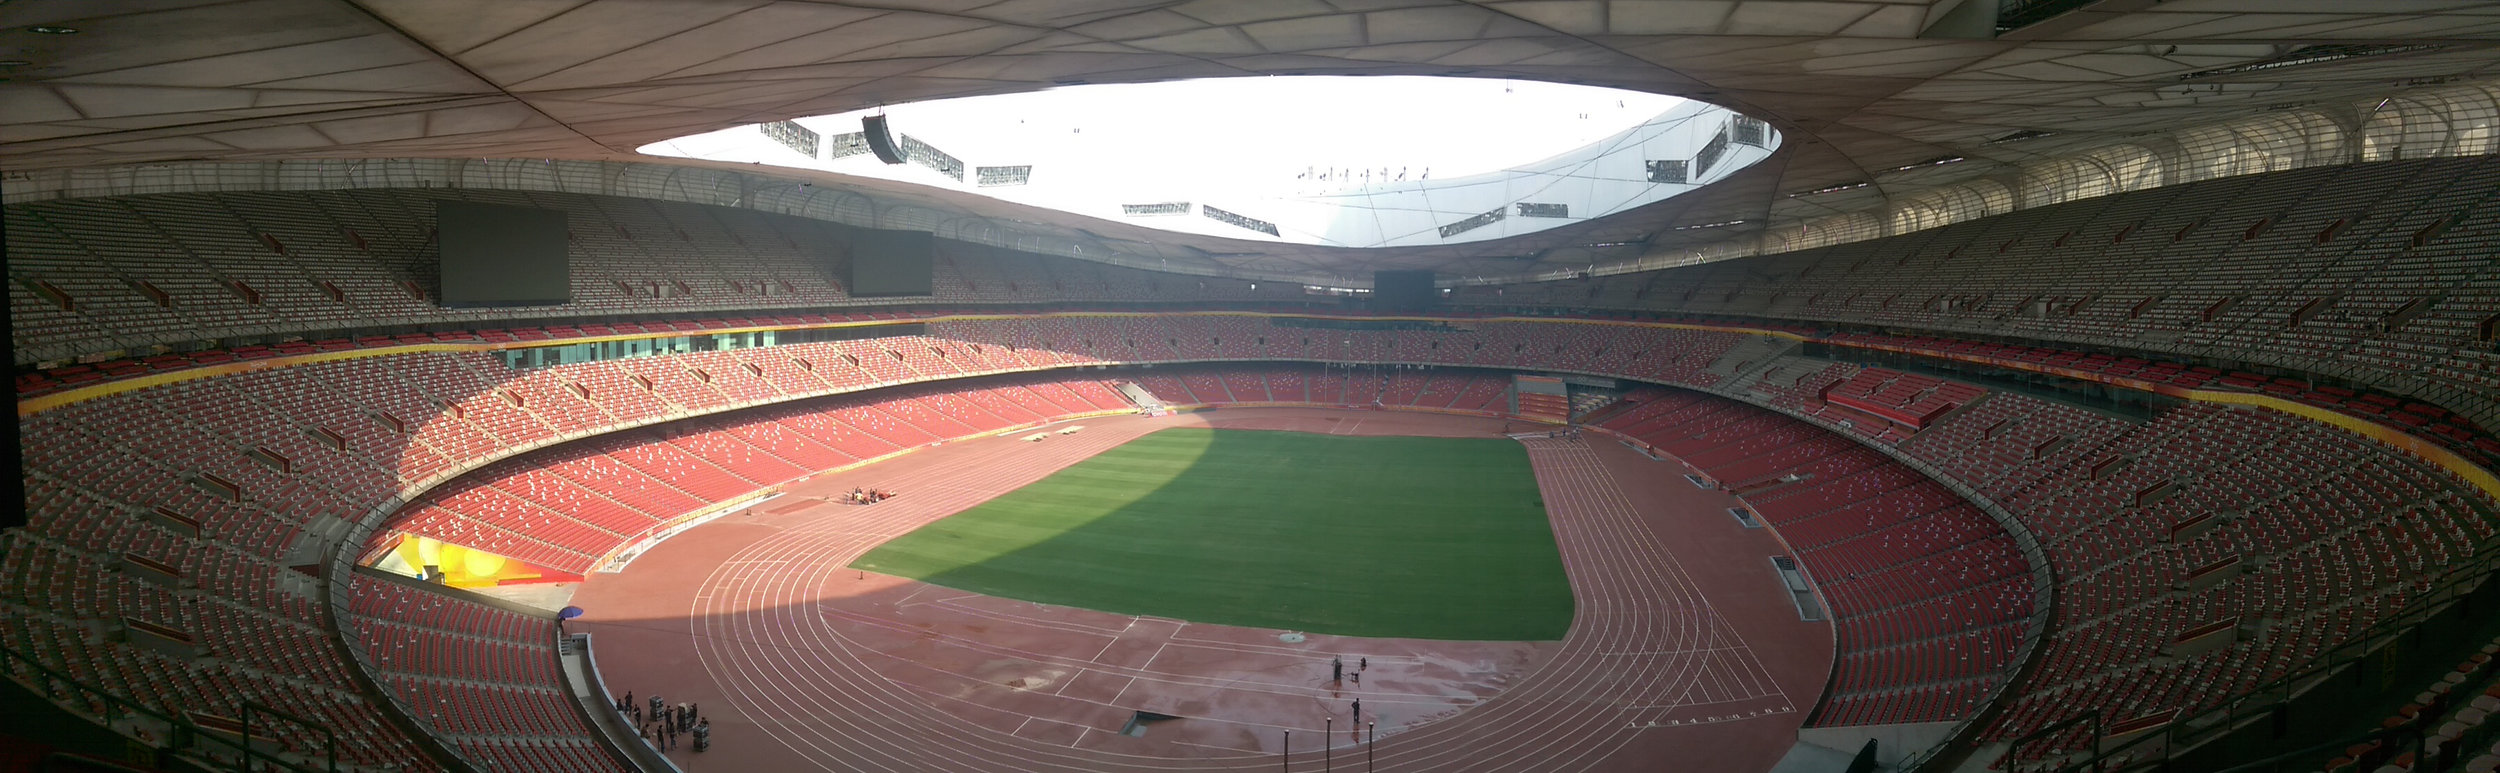 Inside Bird's Nest at Olympic Green in Beijing's Chaoyang District